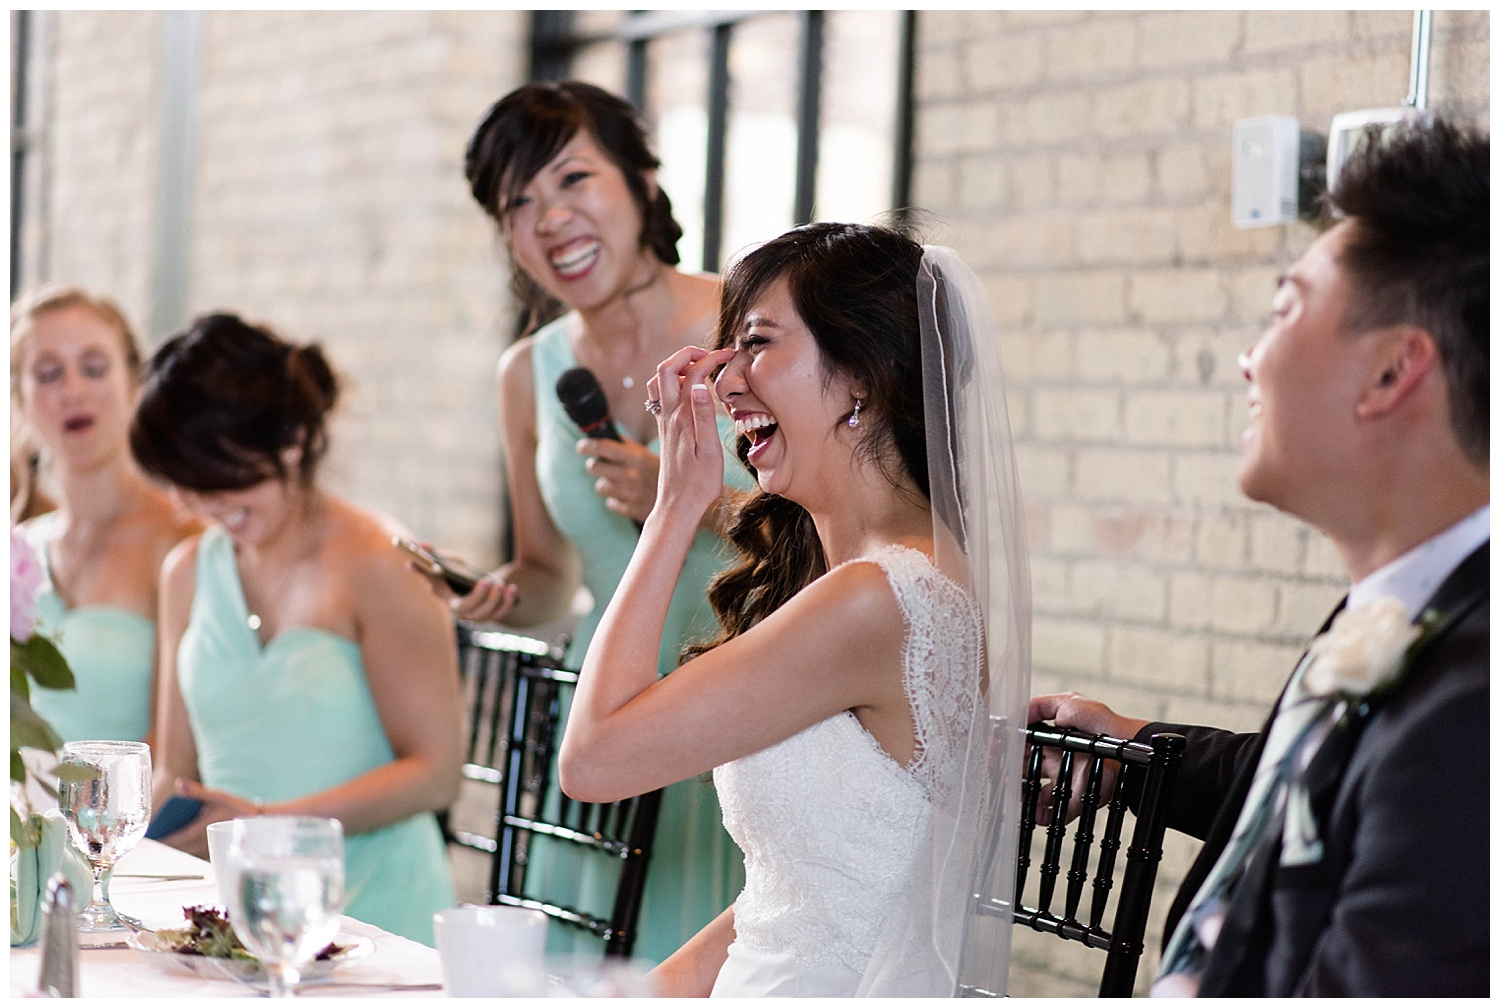 Weddings_by_Raisa_Photography_Saint_Mary_Magdalen_New_Vintage_Grand_Rapids_Michigan_Wedding_Photographer_0101.jpg